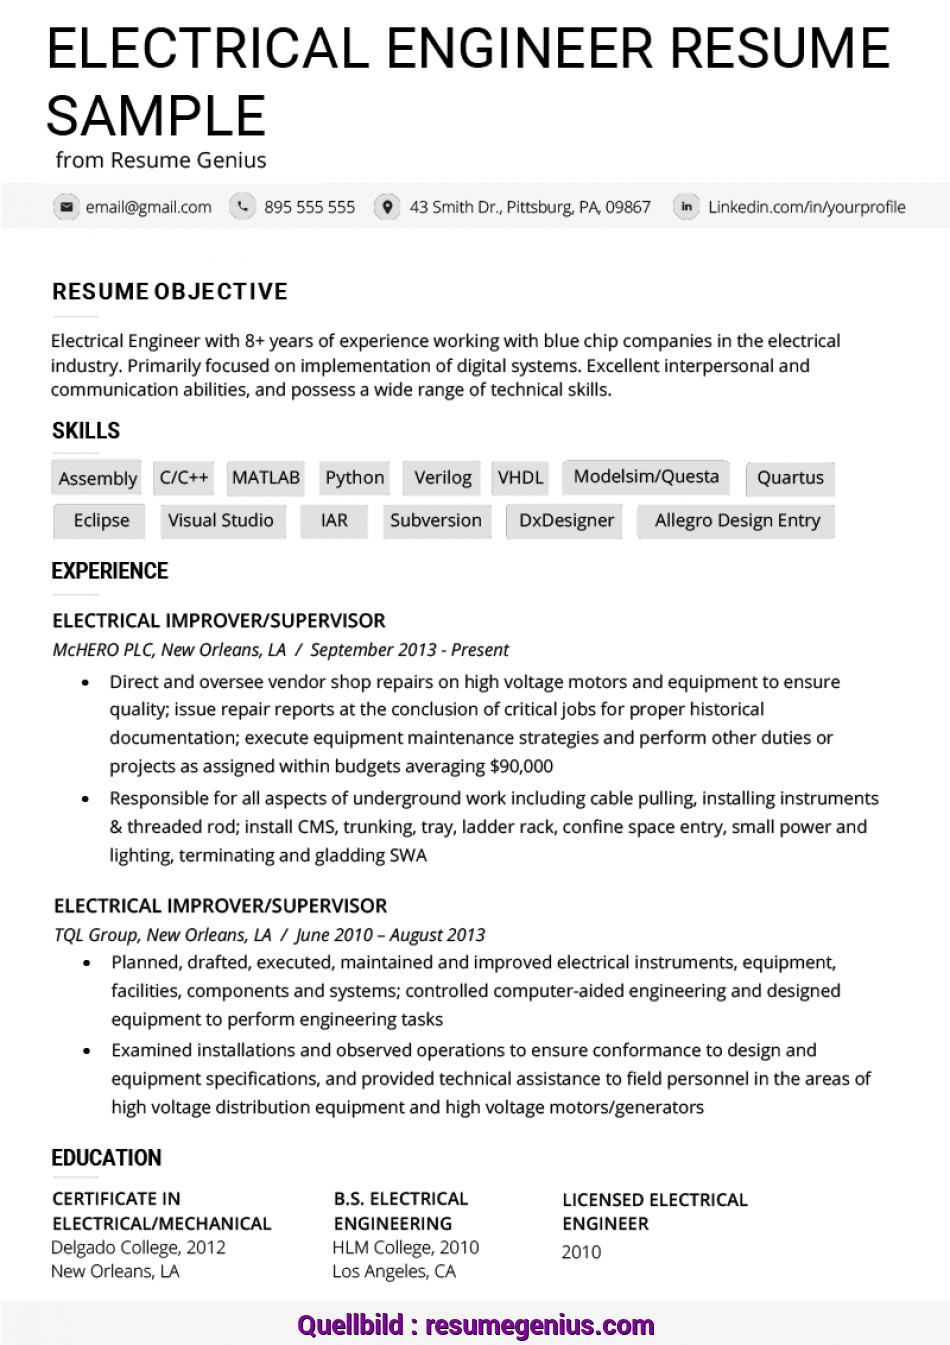 Gut Electrical Engineer Resume Example & Writing Tips, Resume Genius